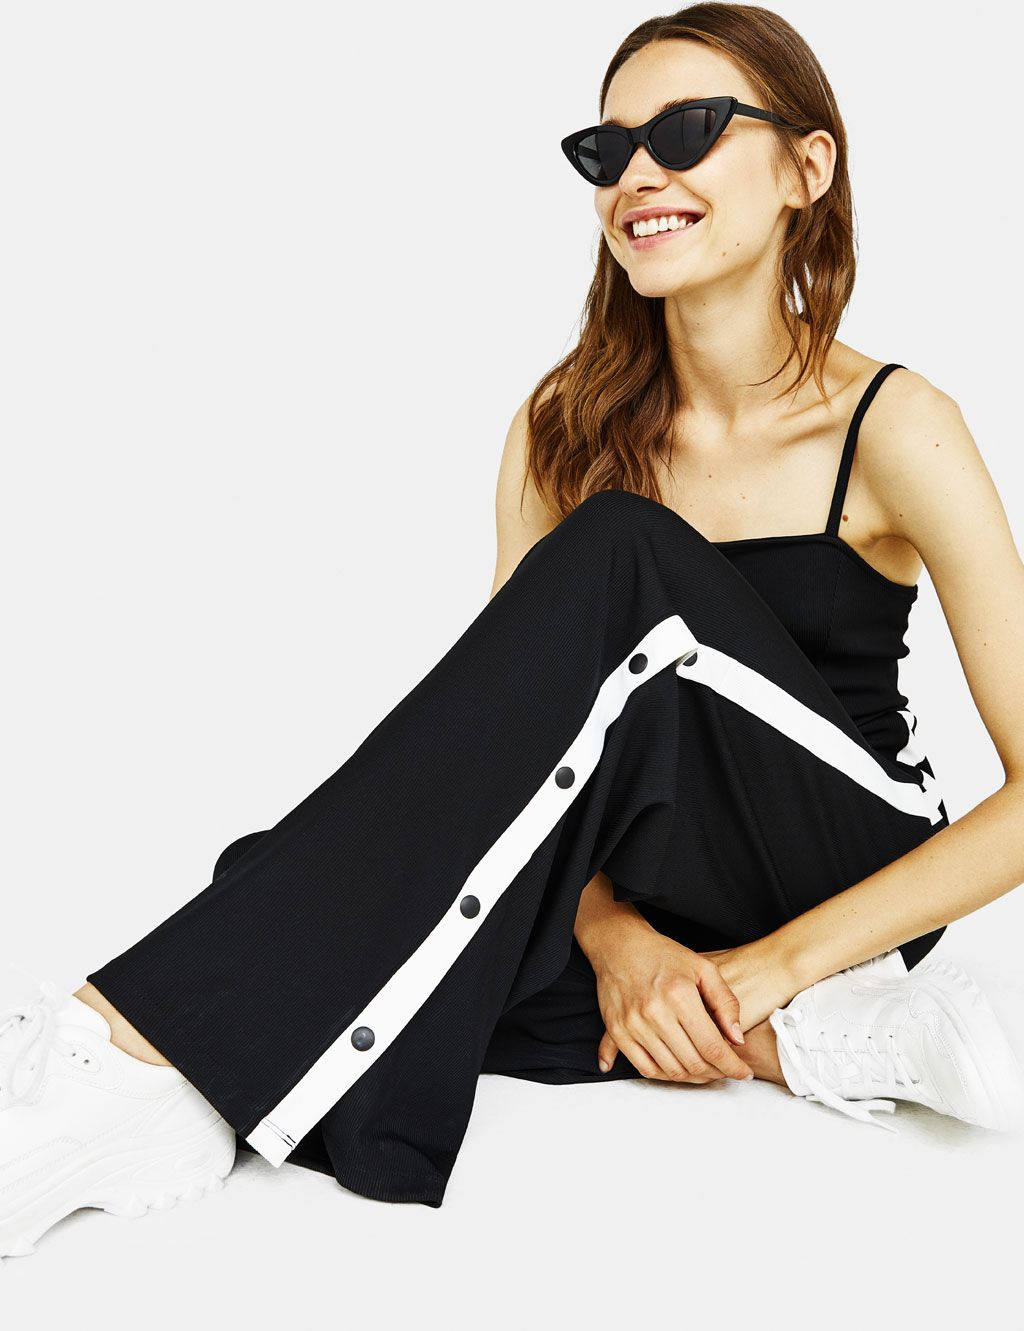 34b9be8b7f0f Long ribbed jumpsuit with snap buttons - Bershka  newin  new fashion   clothes  trend  trendy  cool  2018  tendencia moda  outfit  outfits ideas inspiration  ...